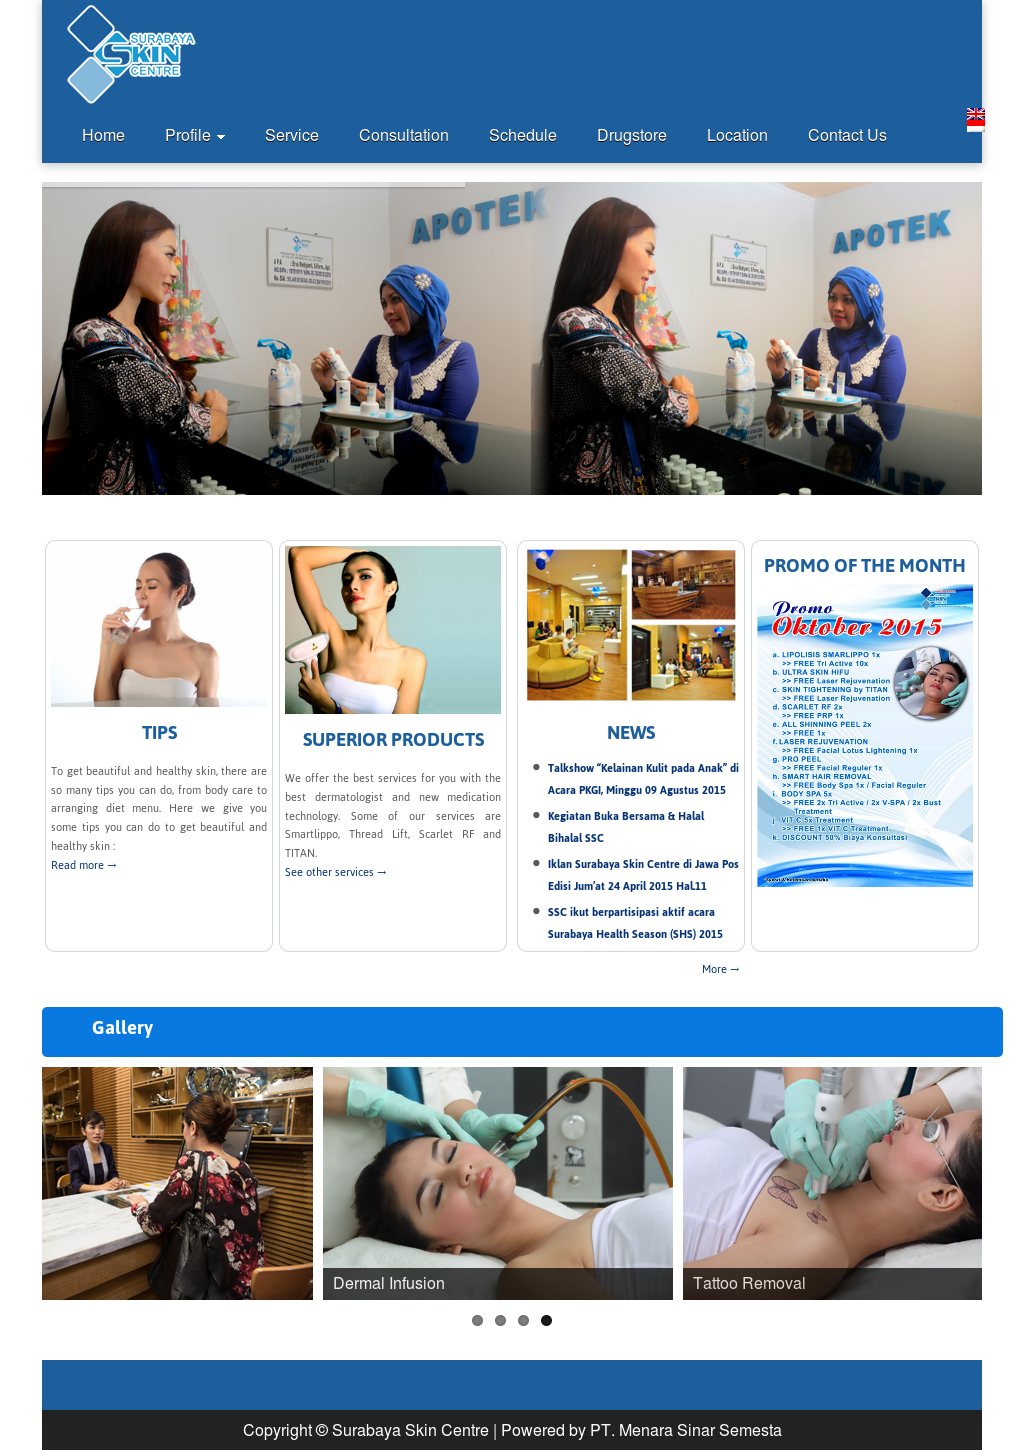 Surabaya Skin Centre Competitors, Revenue and Employees